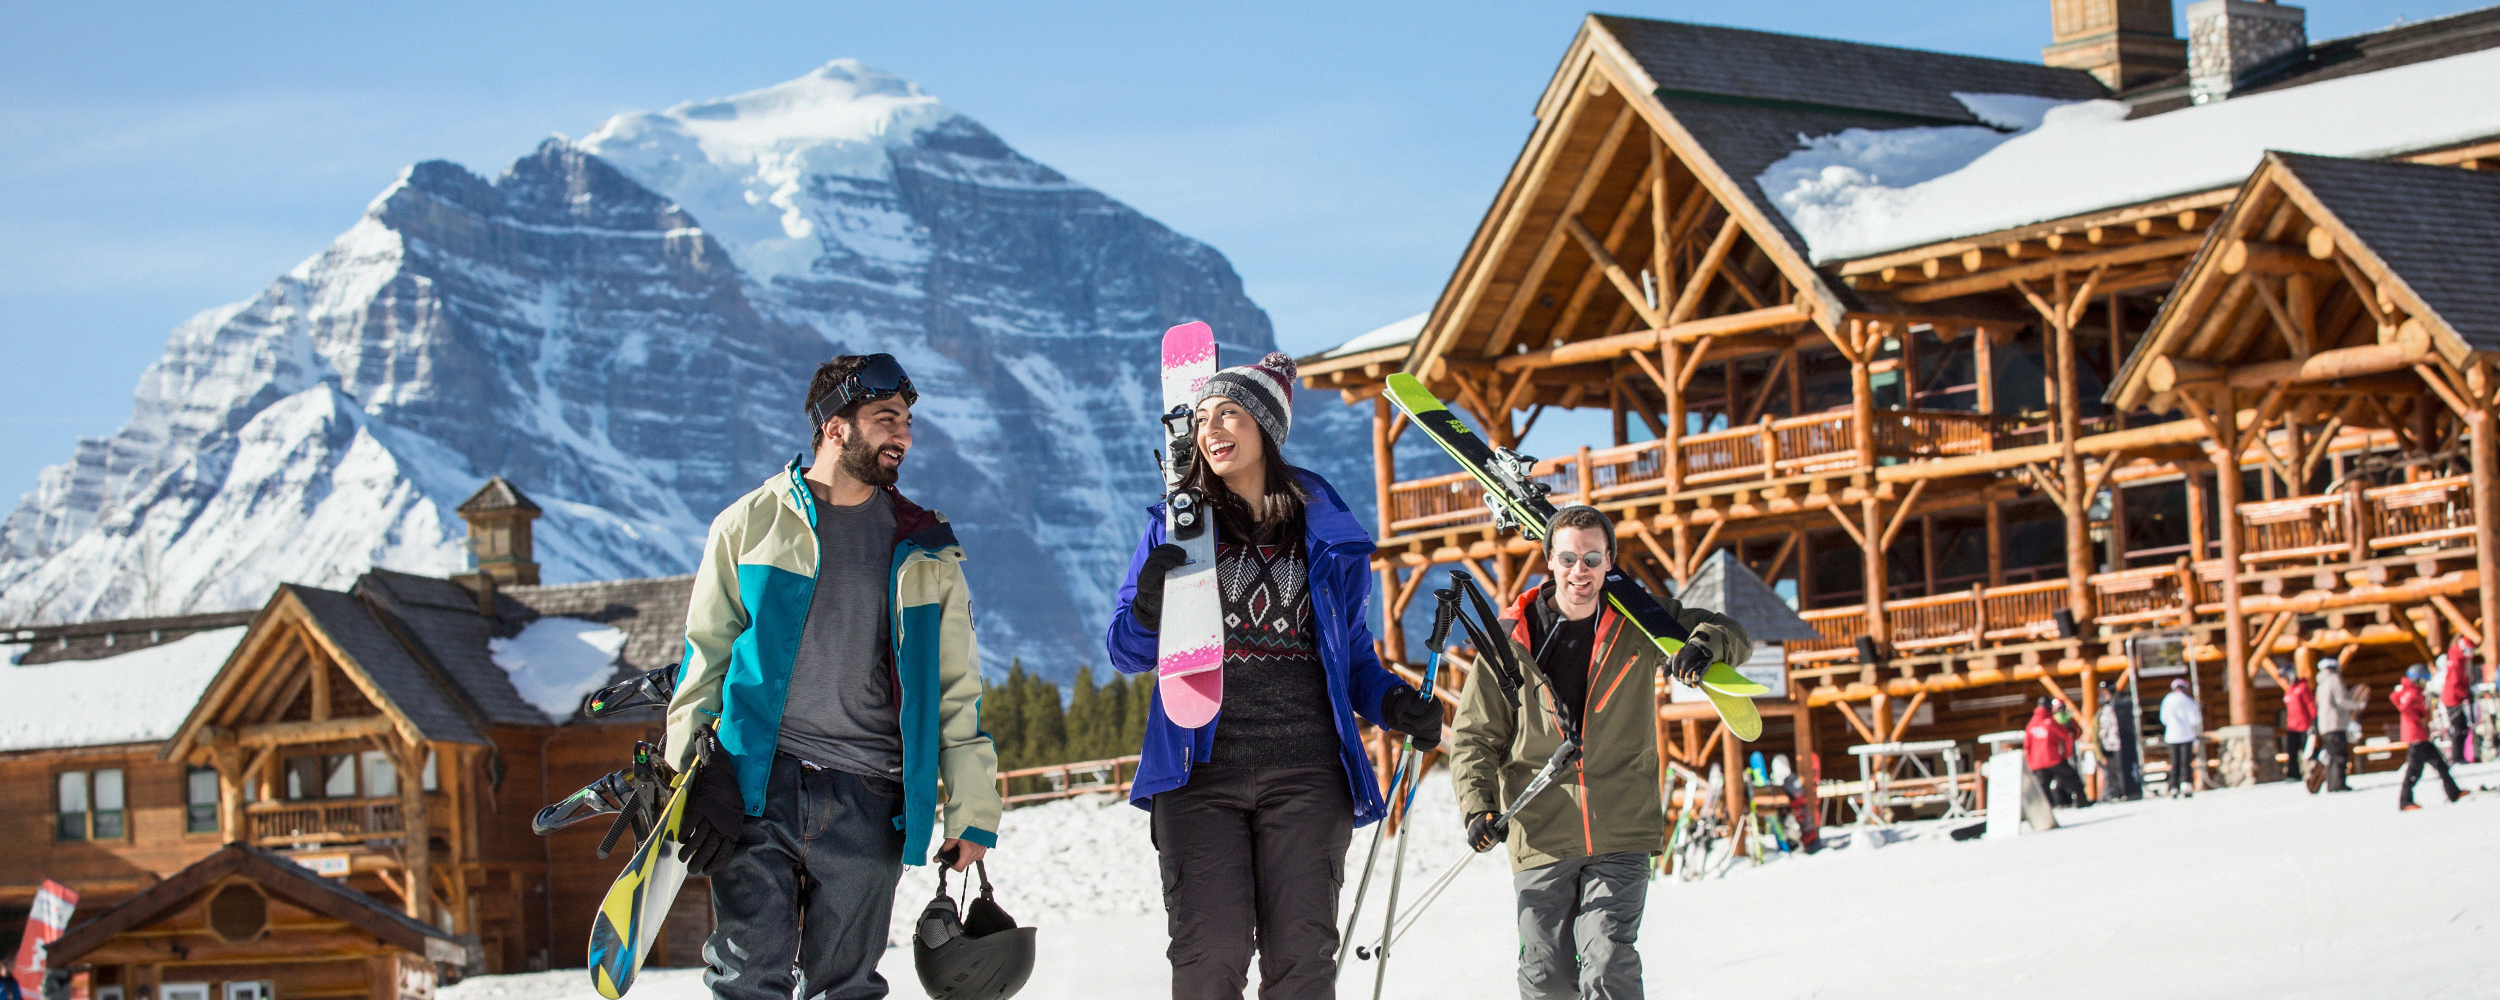 Spring skiing in Banff National Park